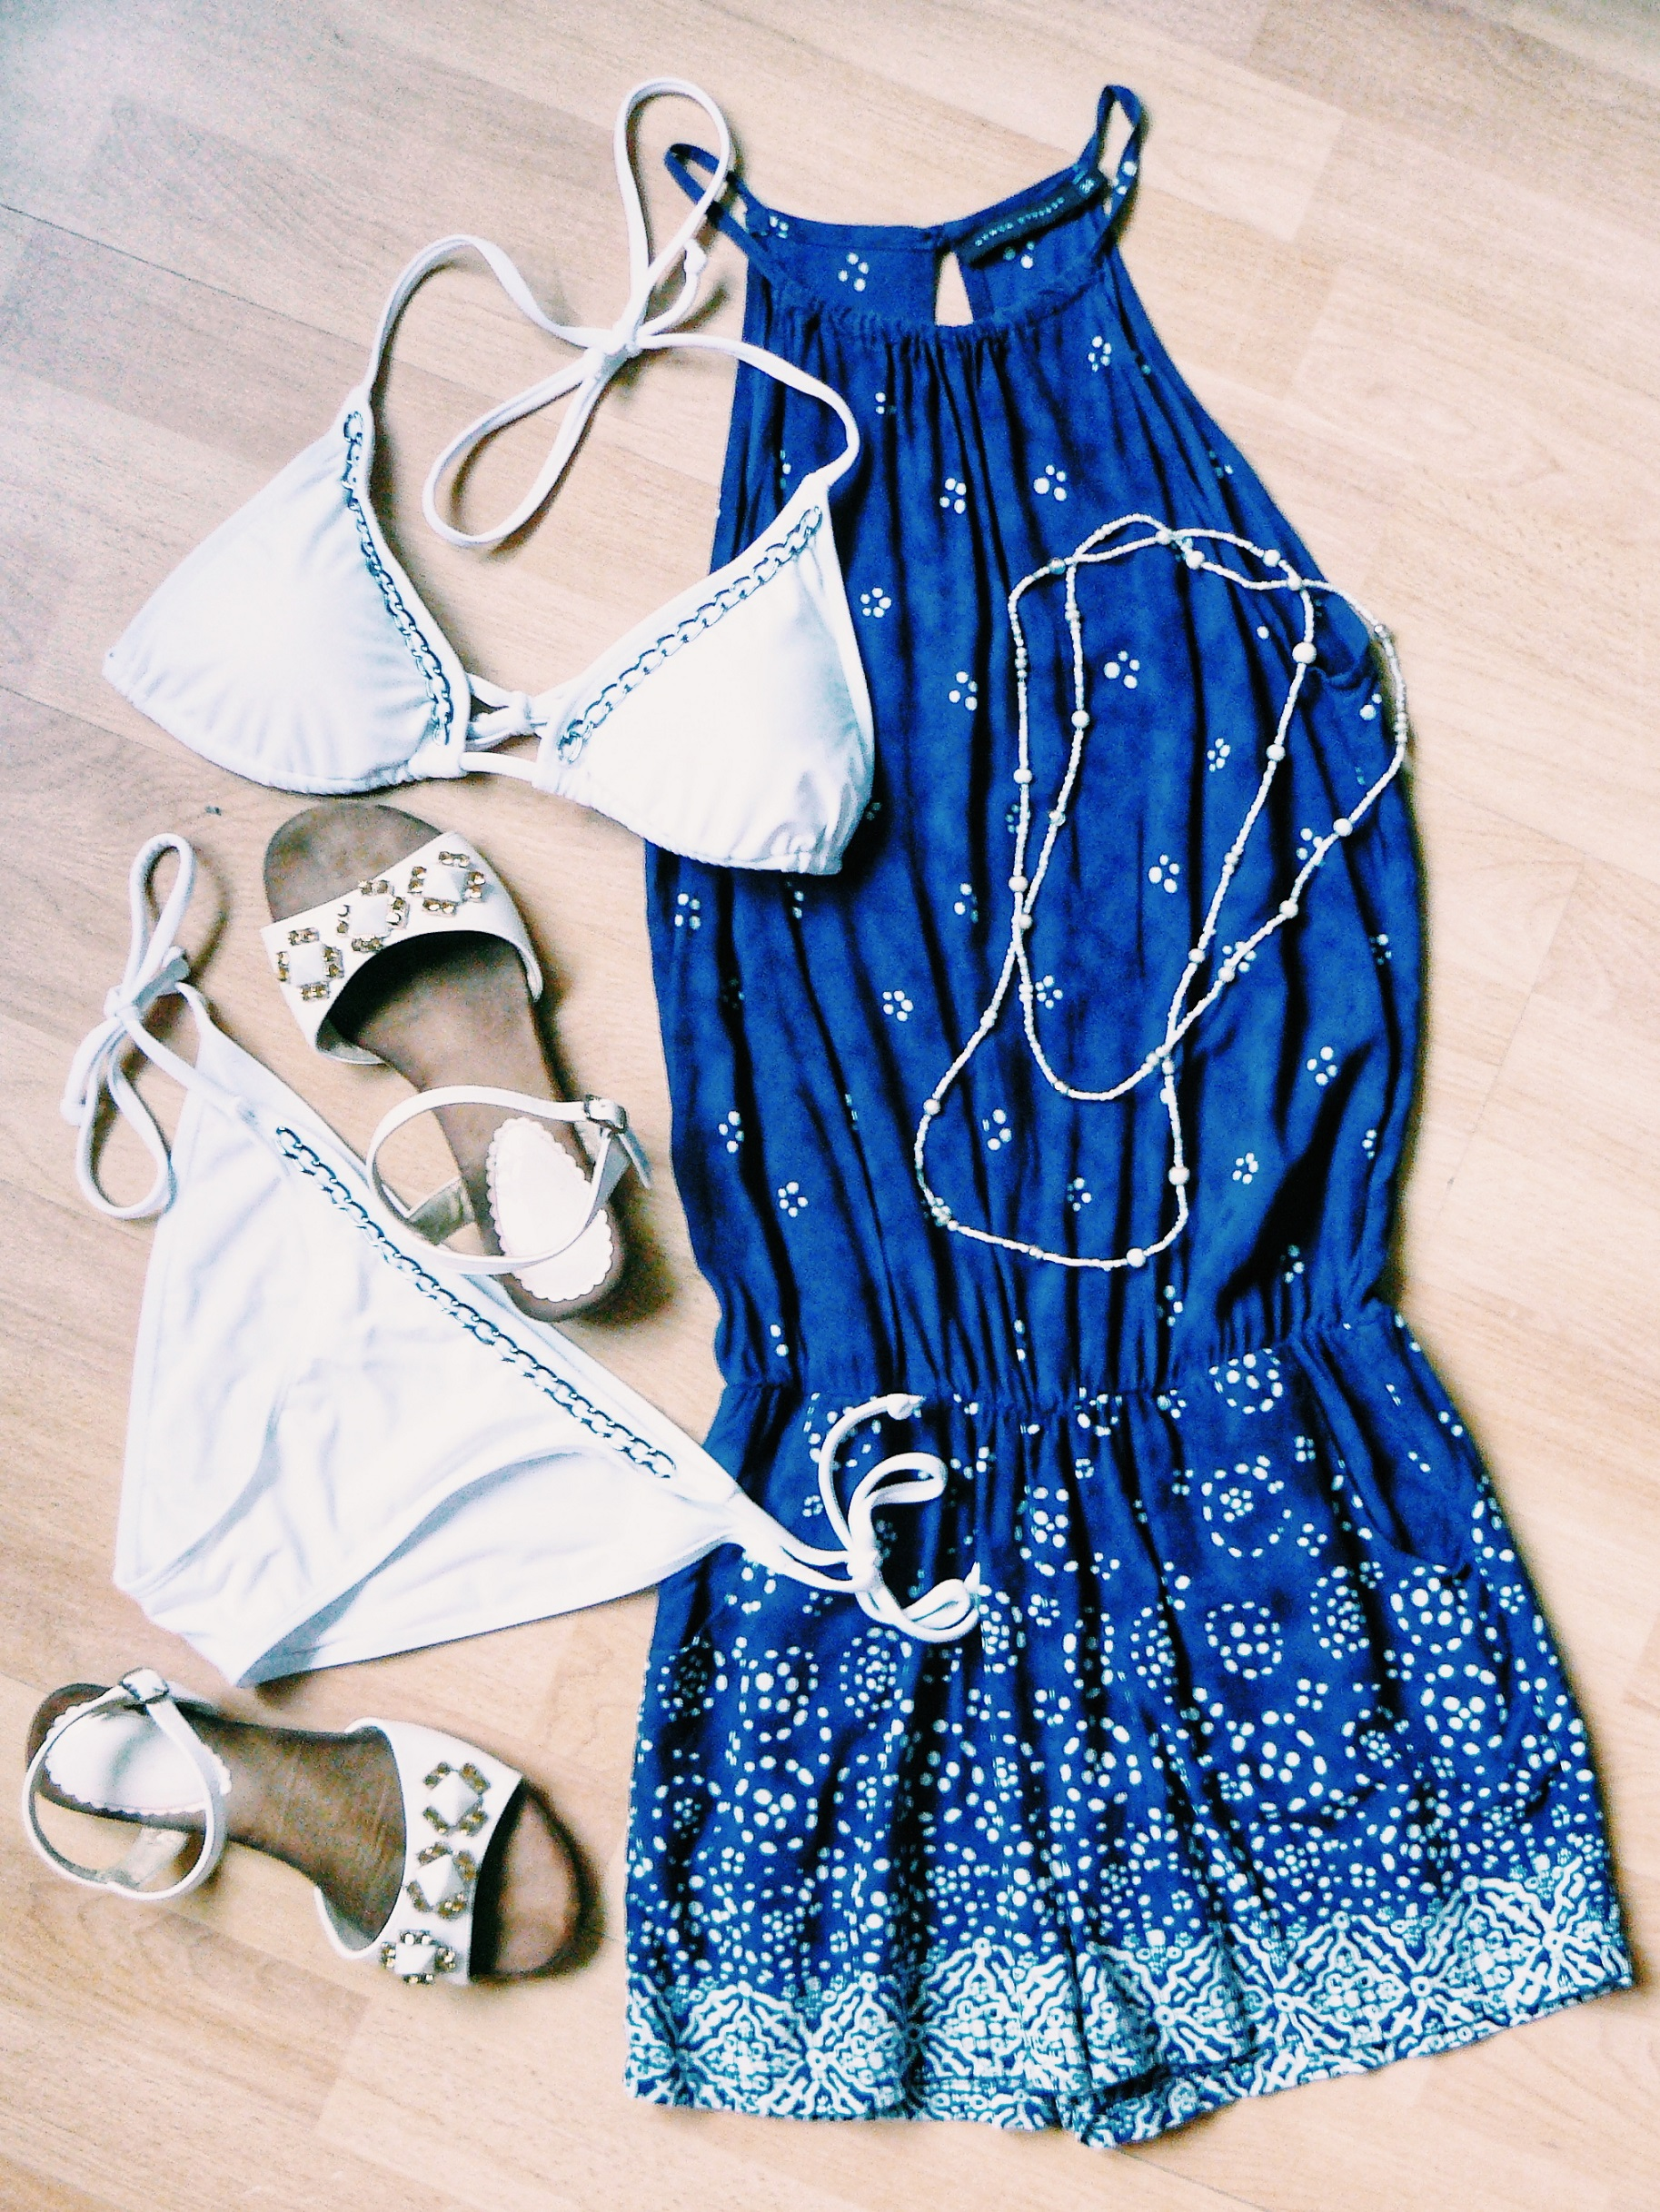 Outlandish blog holiday fashion style outfit inspiration packing tutorial